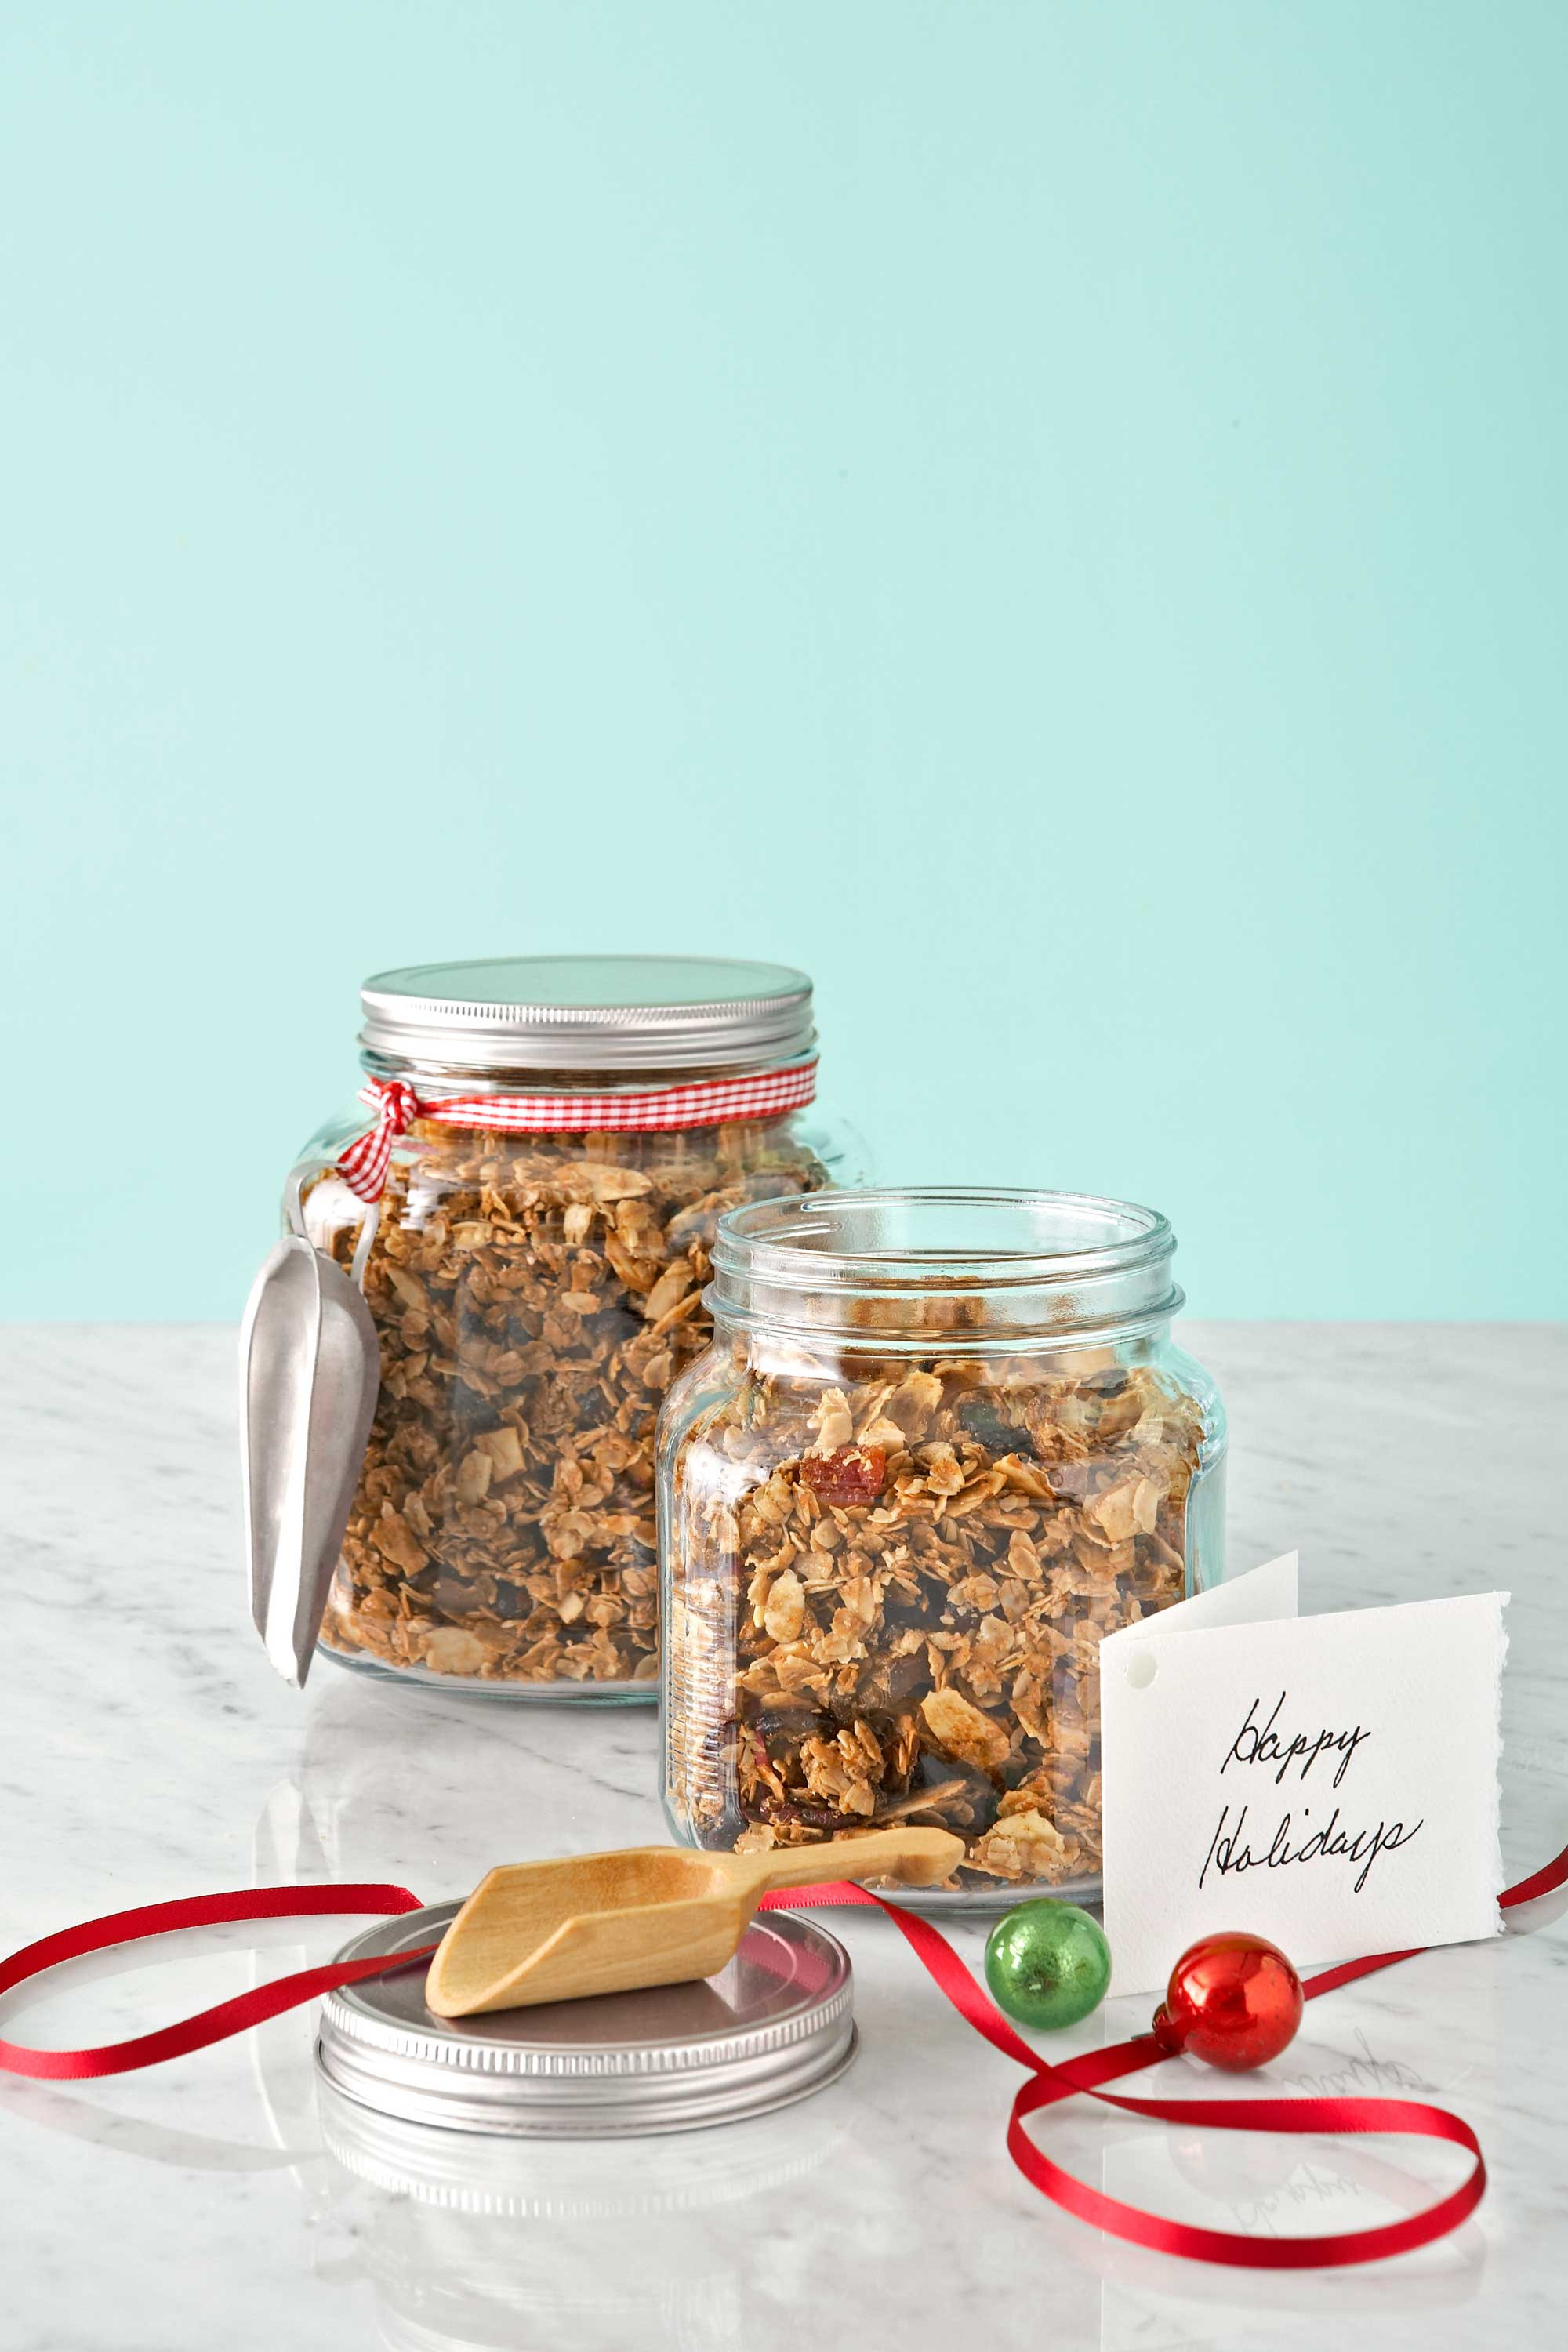 Best Food Gifts For Christmas  36 Homemade Christmas Food Gifts Edible Holiday Gift Ideas